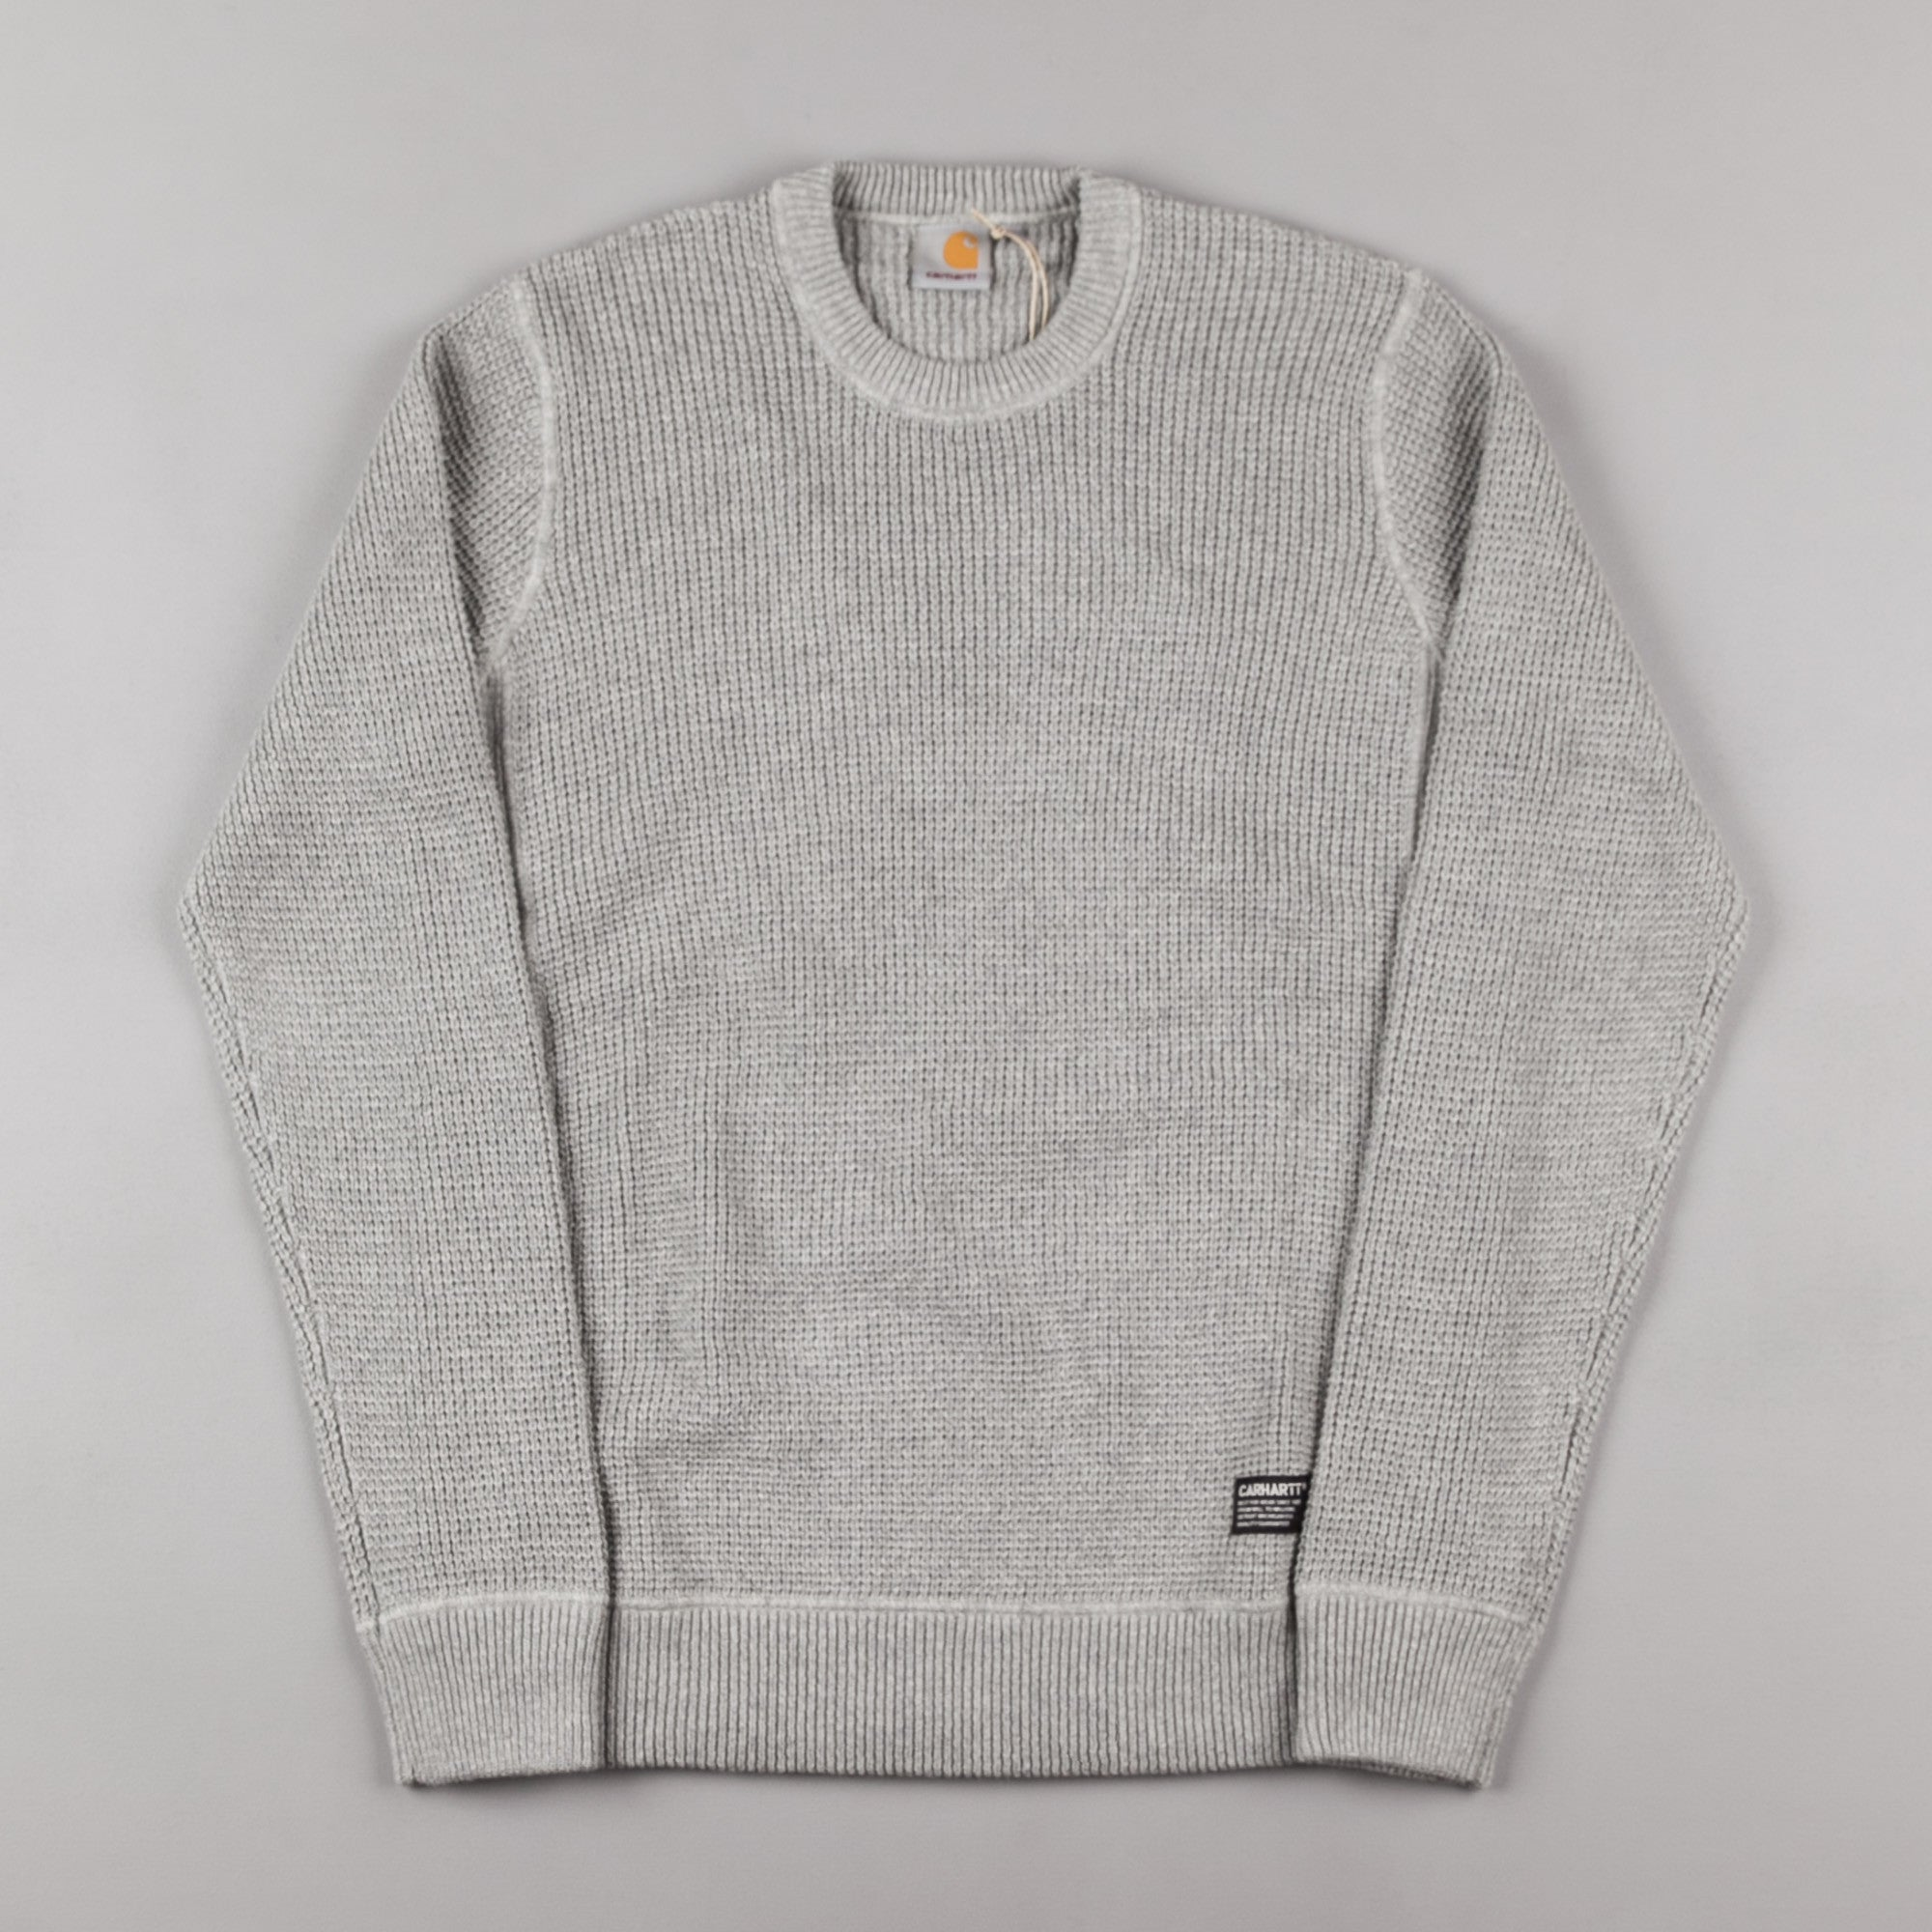 Carhartt Mason Sweatshirt - Grey Heather